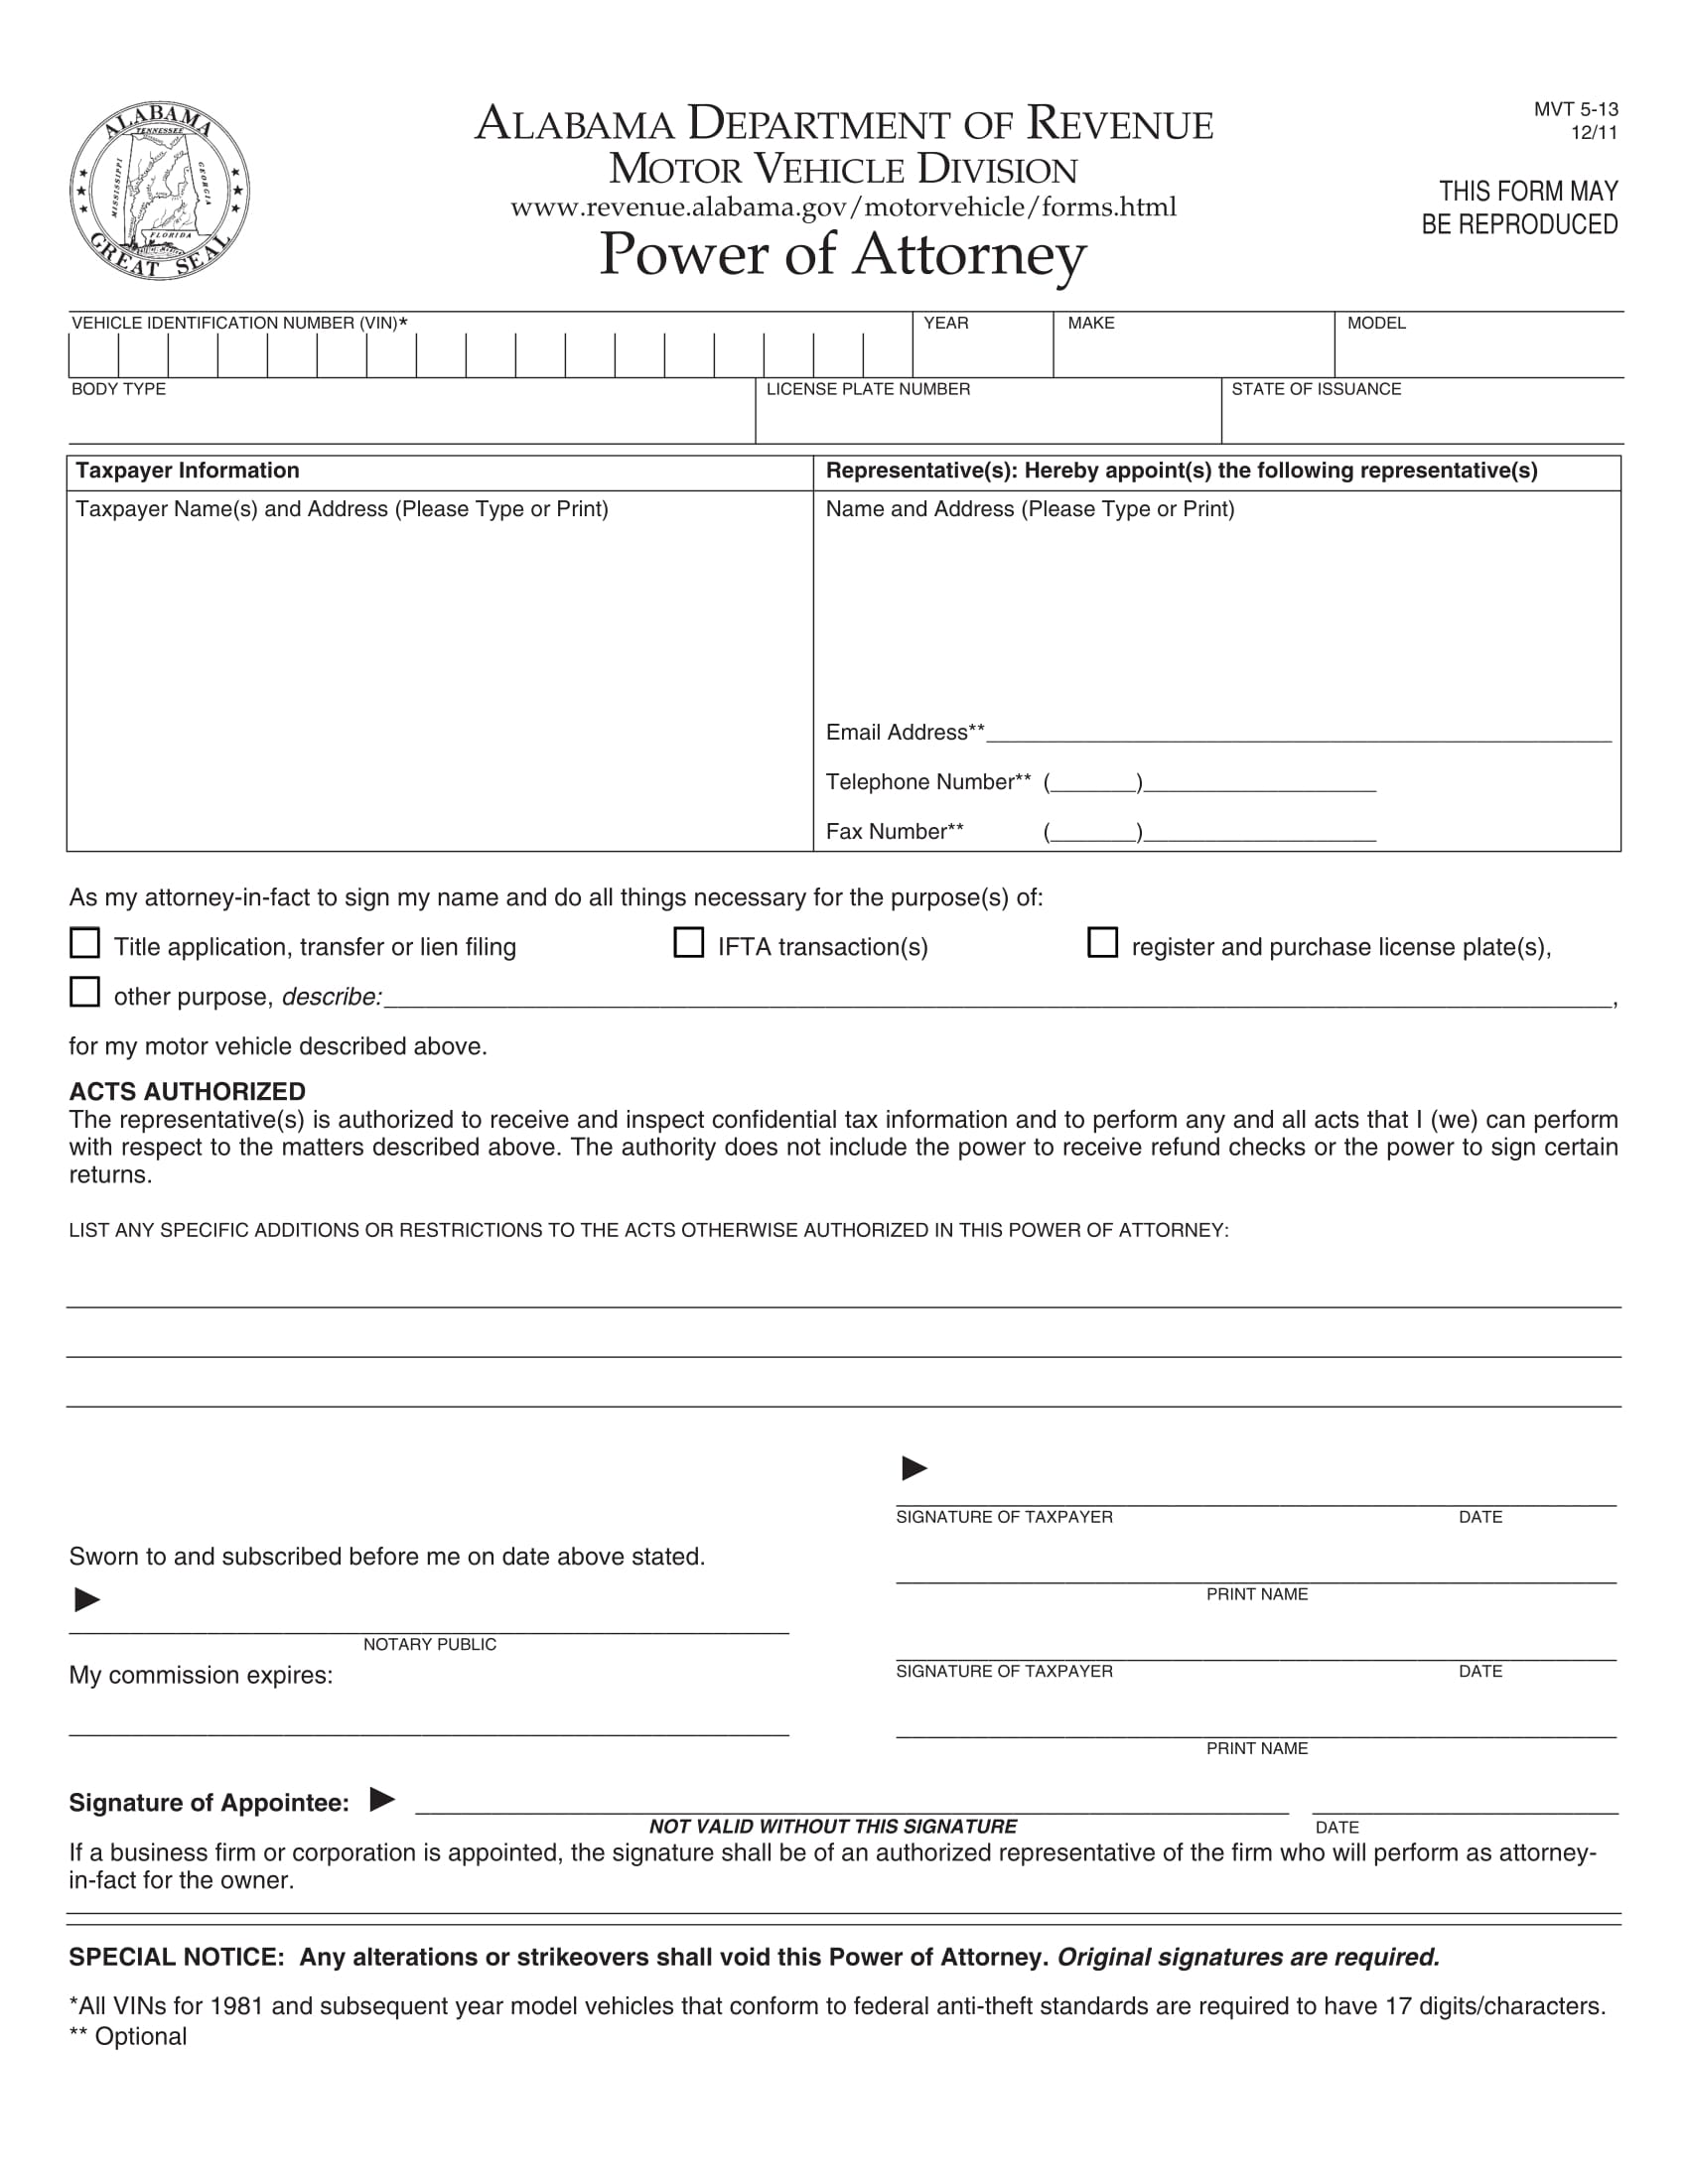 30 power of attorney forms by state alabama dmv power of attorney form falaconquin